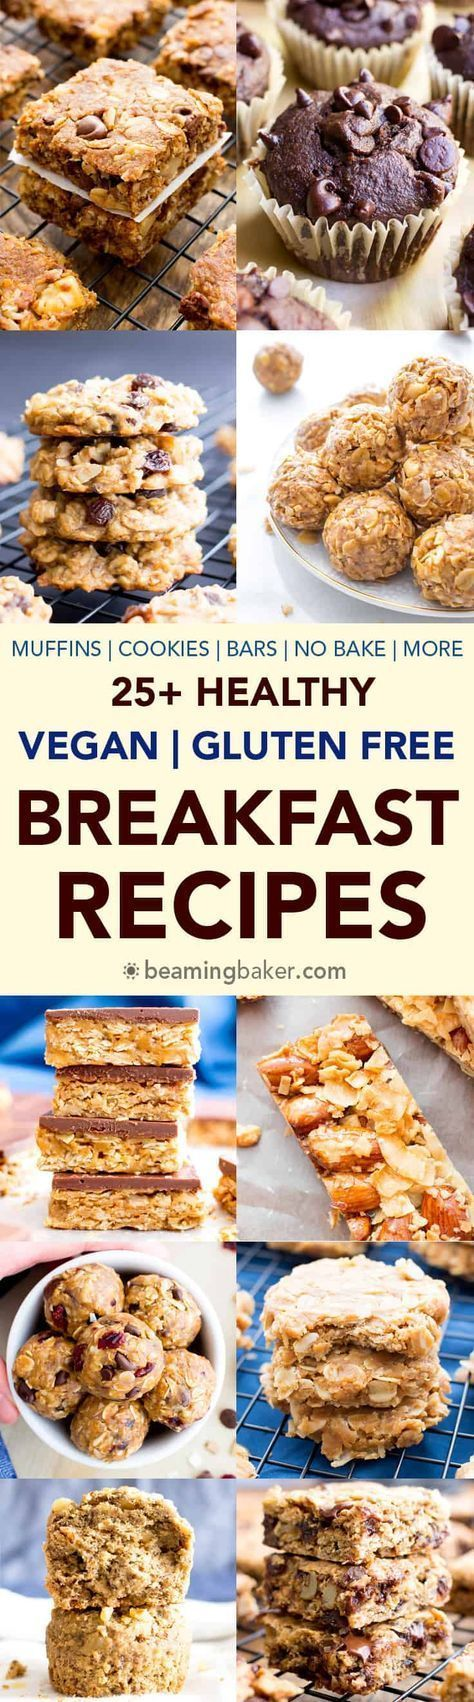 25+ Healthy Gluten Free Breakfast Recipes (V, GF): A satisfying collection of nutritious, gluten free vegan healthy breakfast recipes to help you start your day off right! #Vegan #GlutenFree #DairyFree #Breakfast #Healthy   BeamingBaker.com